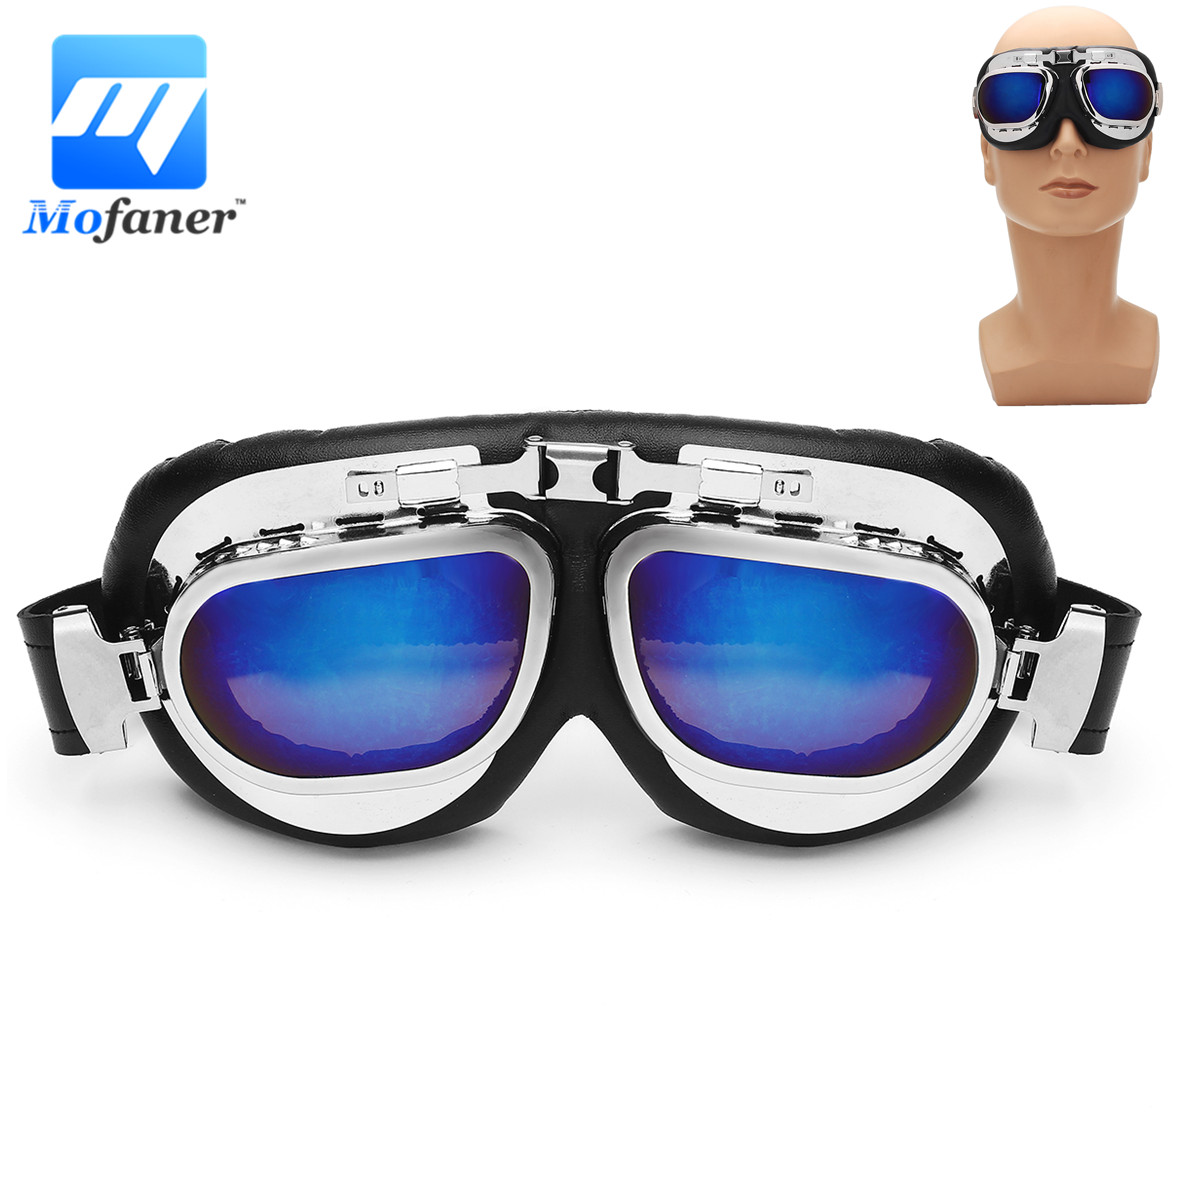 Retro Outdoor Wind Protection For Harley Motorcycle Goggles Cycling Off Road Helmet Ski Sport For Motorbike Bike Racing Goggles